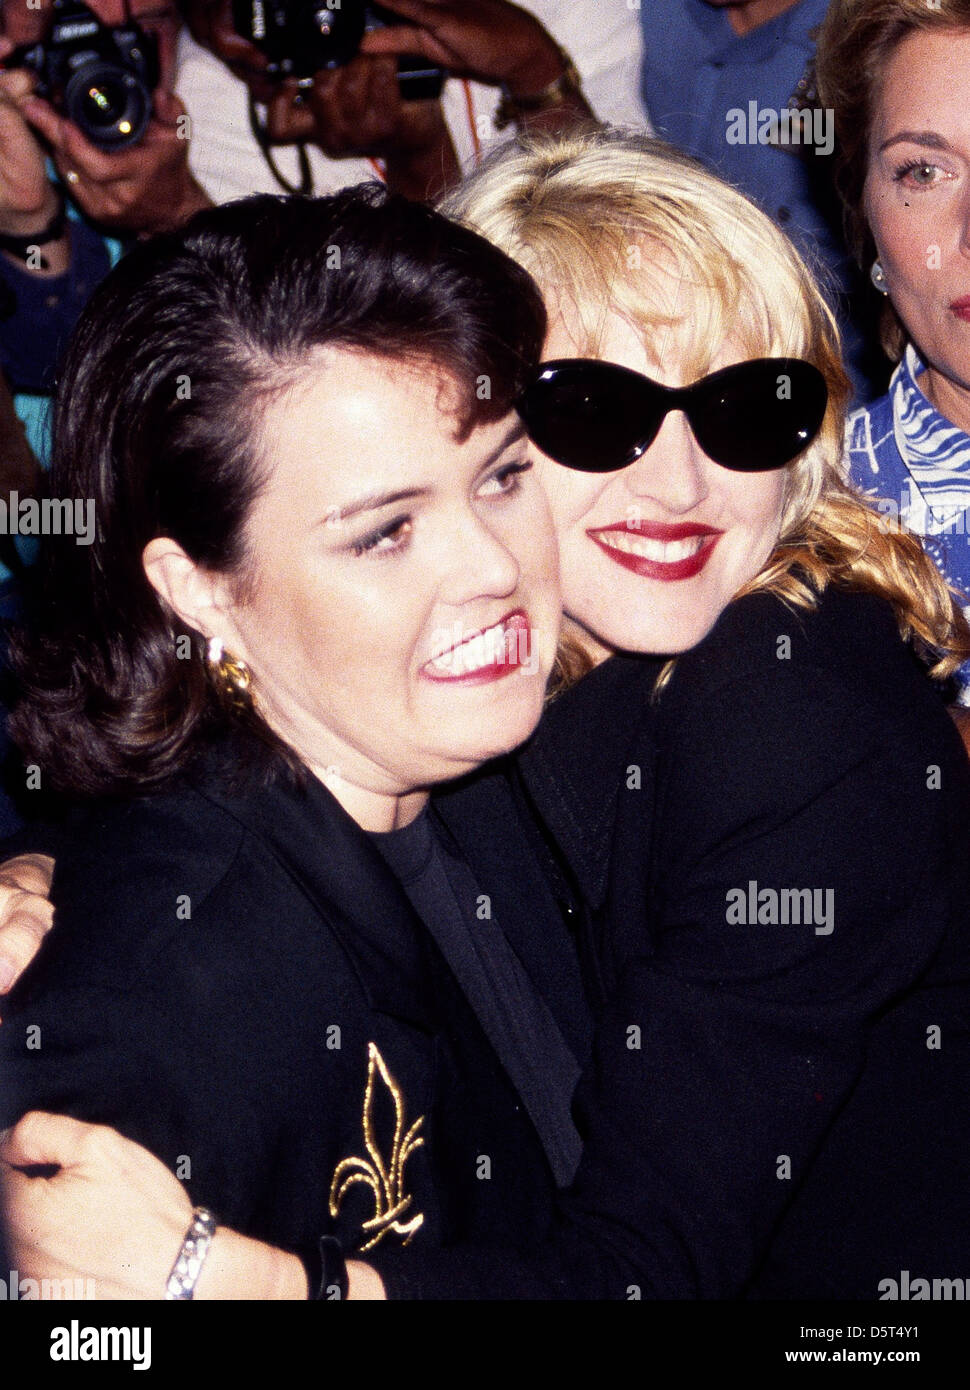 Rosie O'Donnell and Madonna Premiere of 'A League Of Their Own' at the Ziegfeld Theatre - Arrivals. - Stock Image